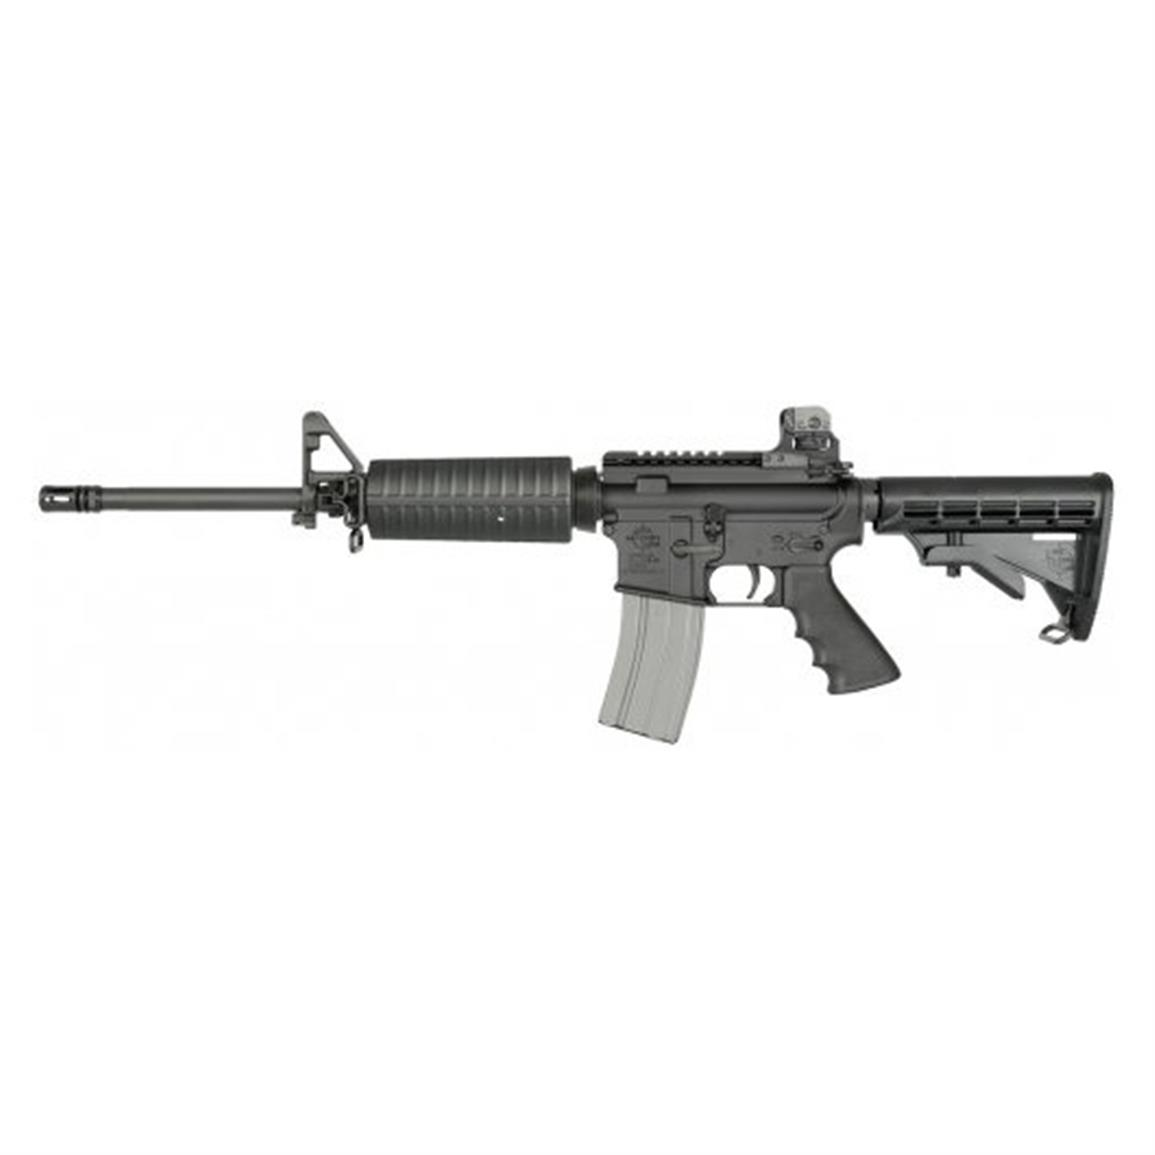 Rock River Arms LAR-15 Tactical CAR A4, Semi-automatic, 5.56x45mm, AR1204, 400008184014, 16 inch Barrel, Dominator2 EOTech Scope Mount